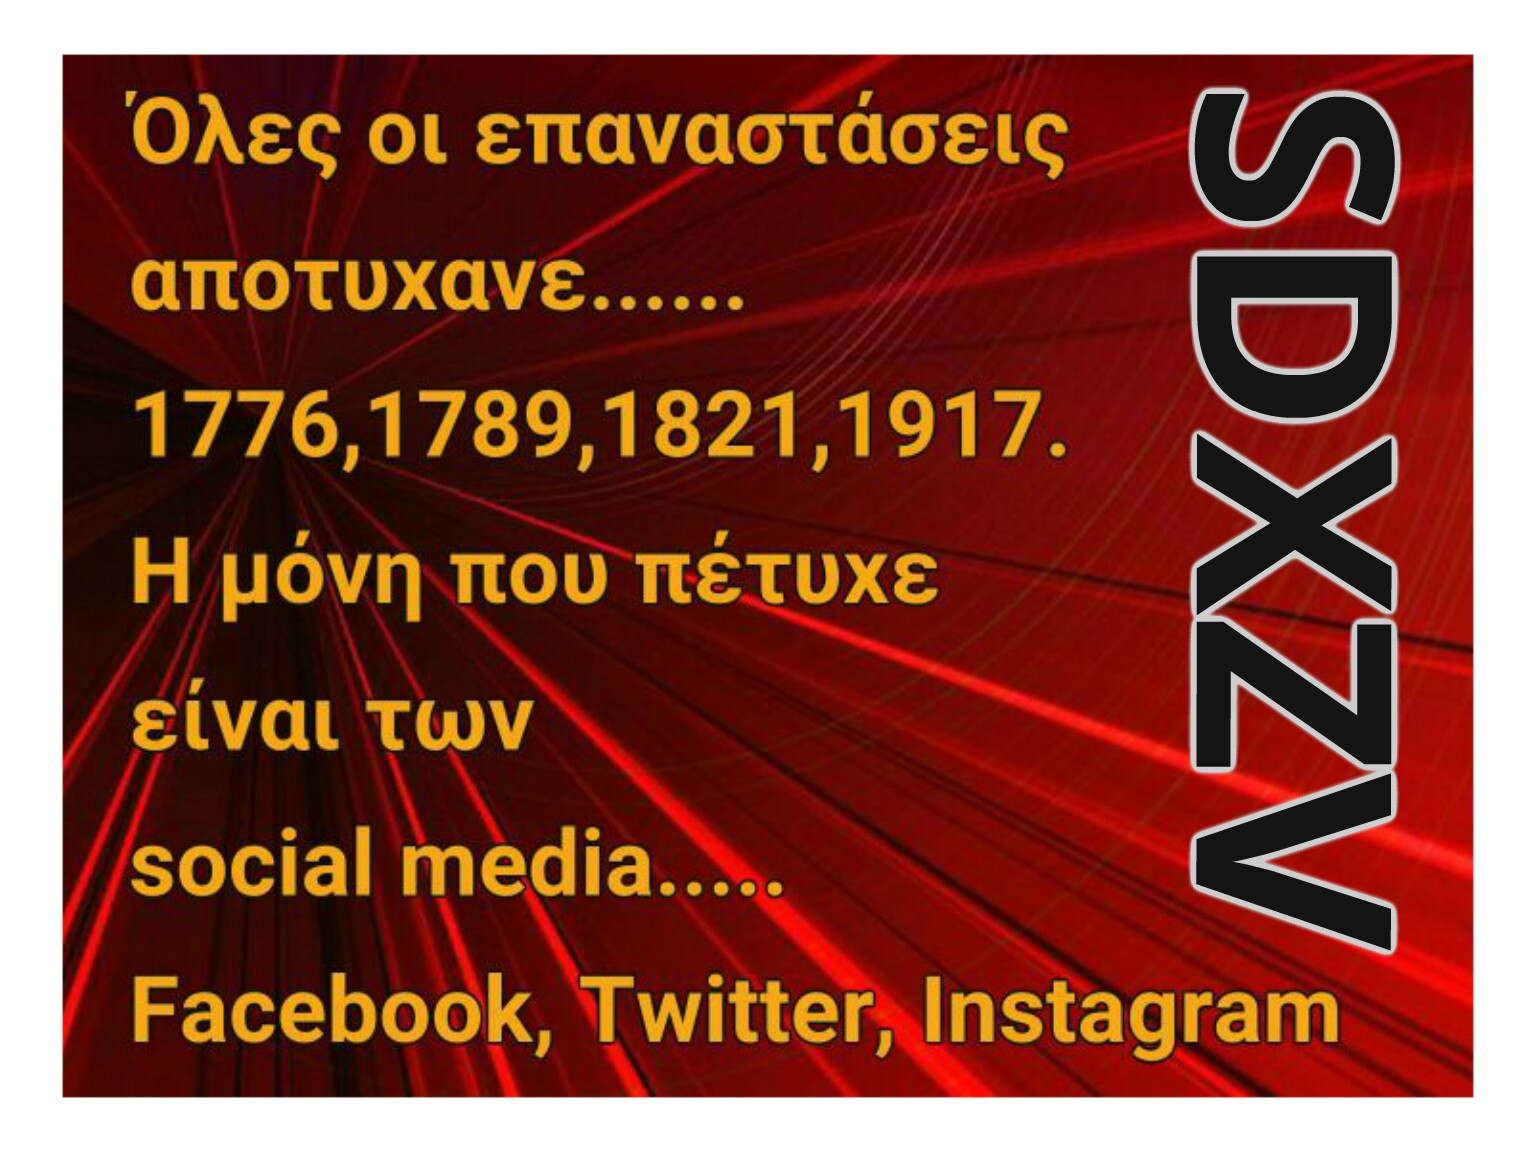 Revolution Facebook Twitter Instagram blog